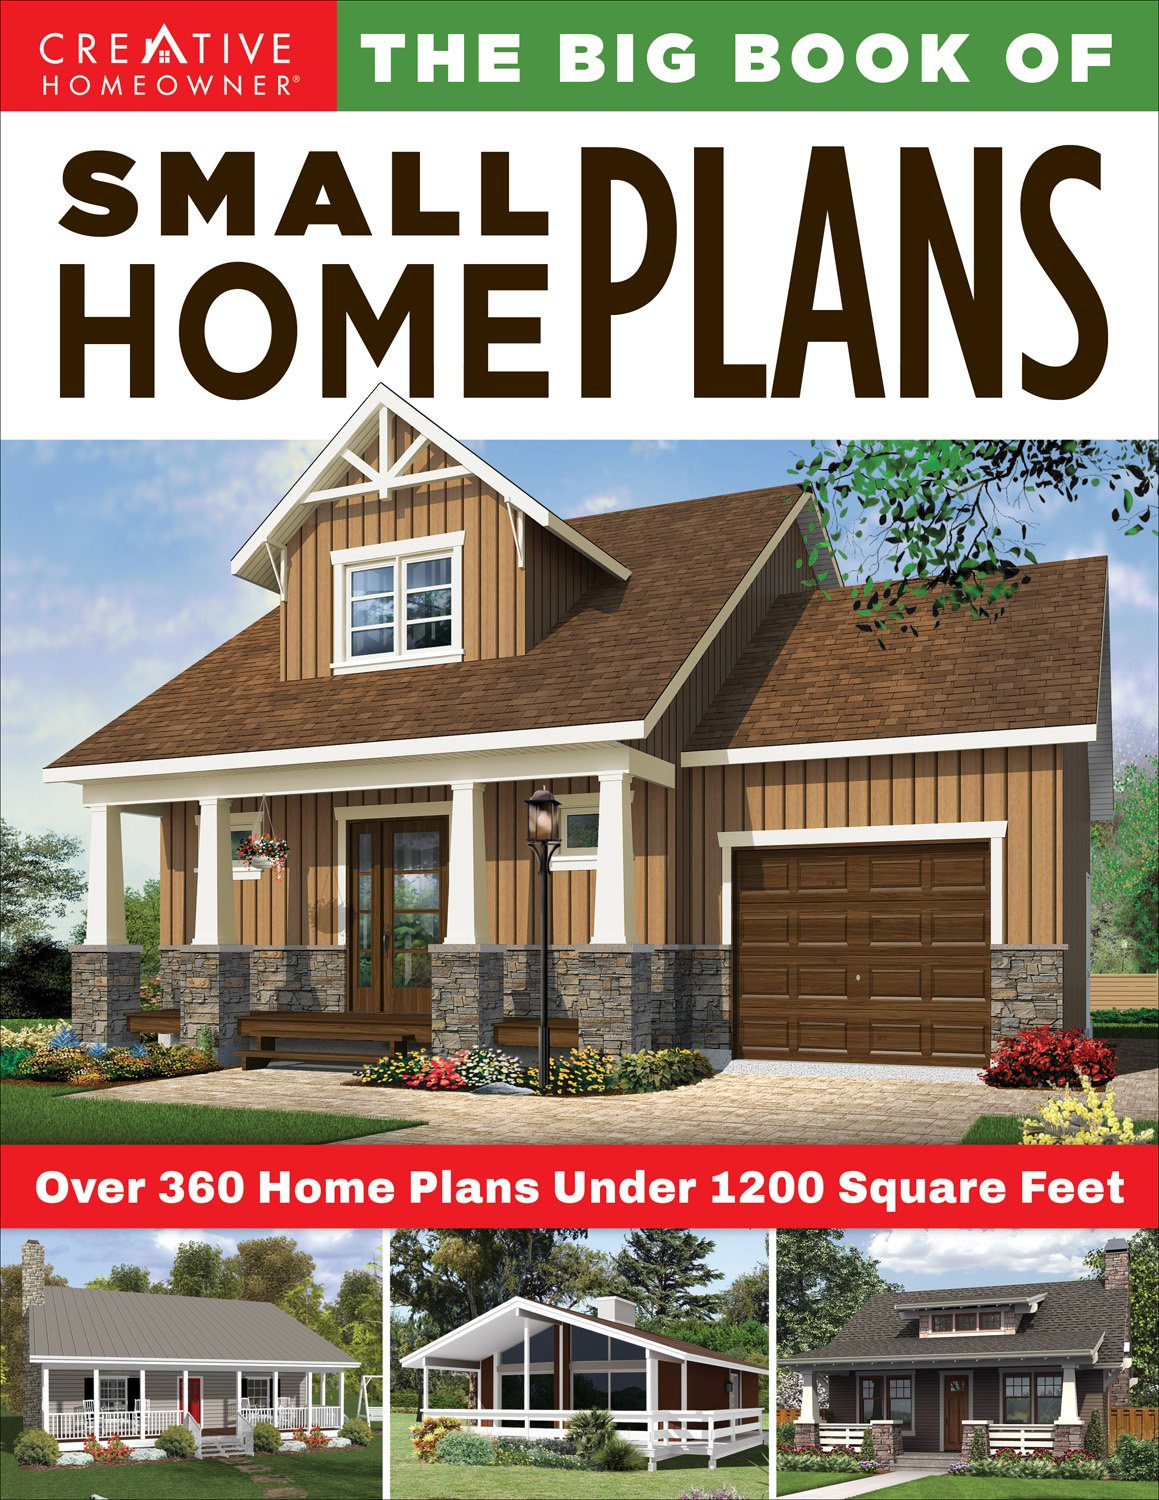 Small Cabin Style House Plans Luxury the Big Book Of Small Home Plans Over 360 Home Plans Under